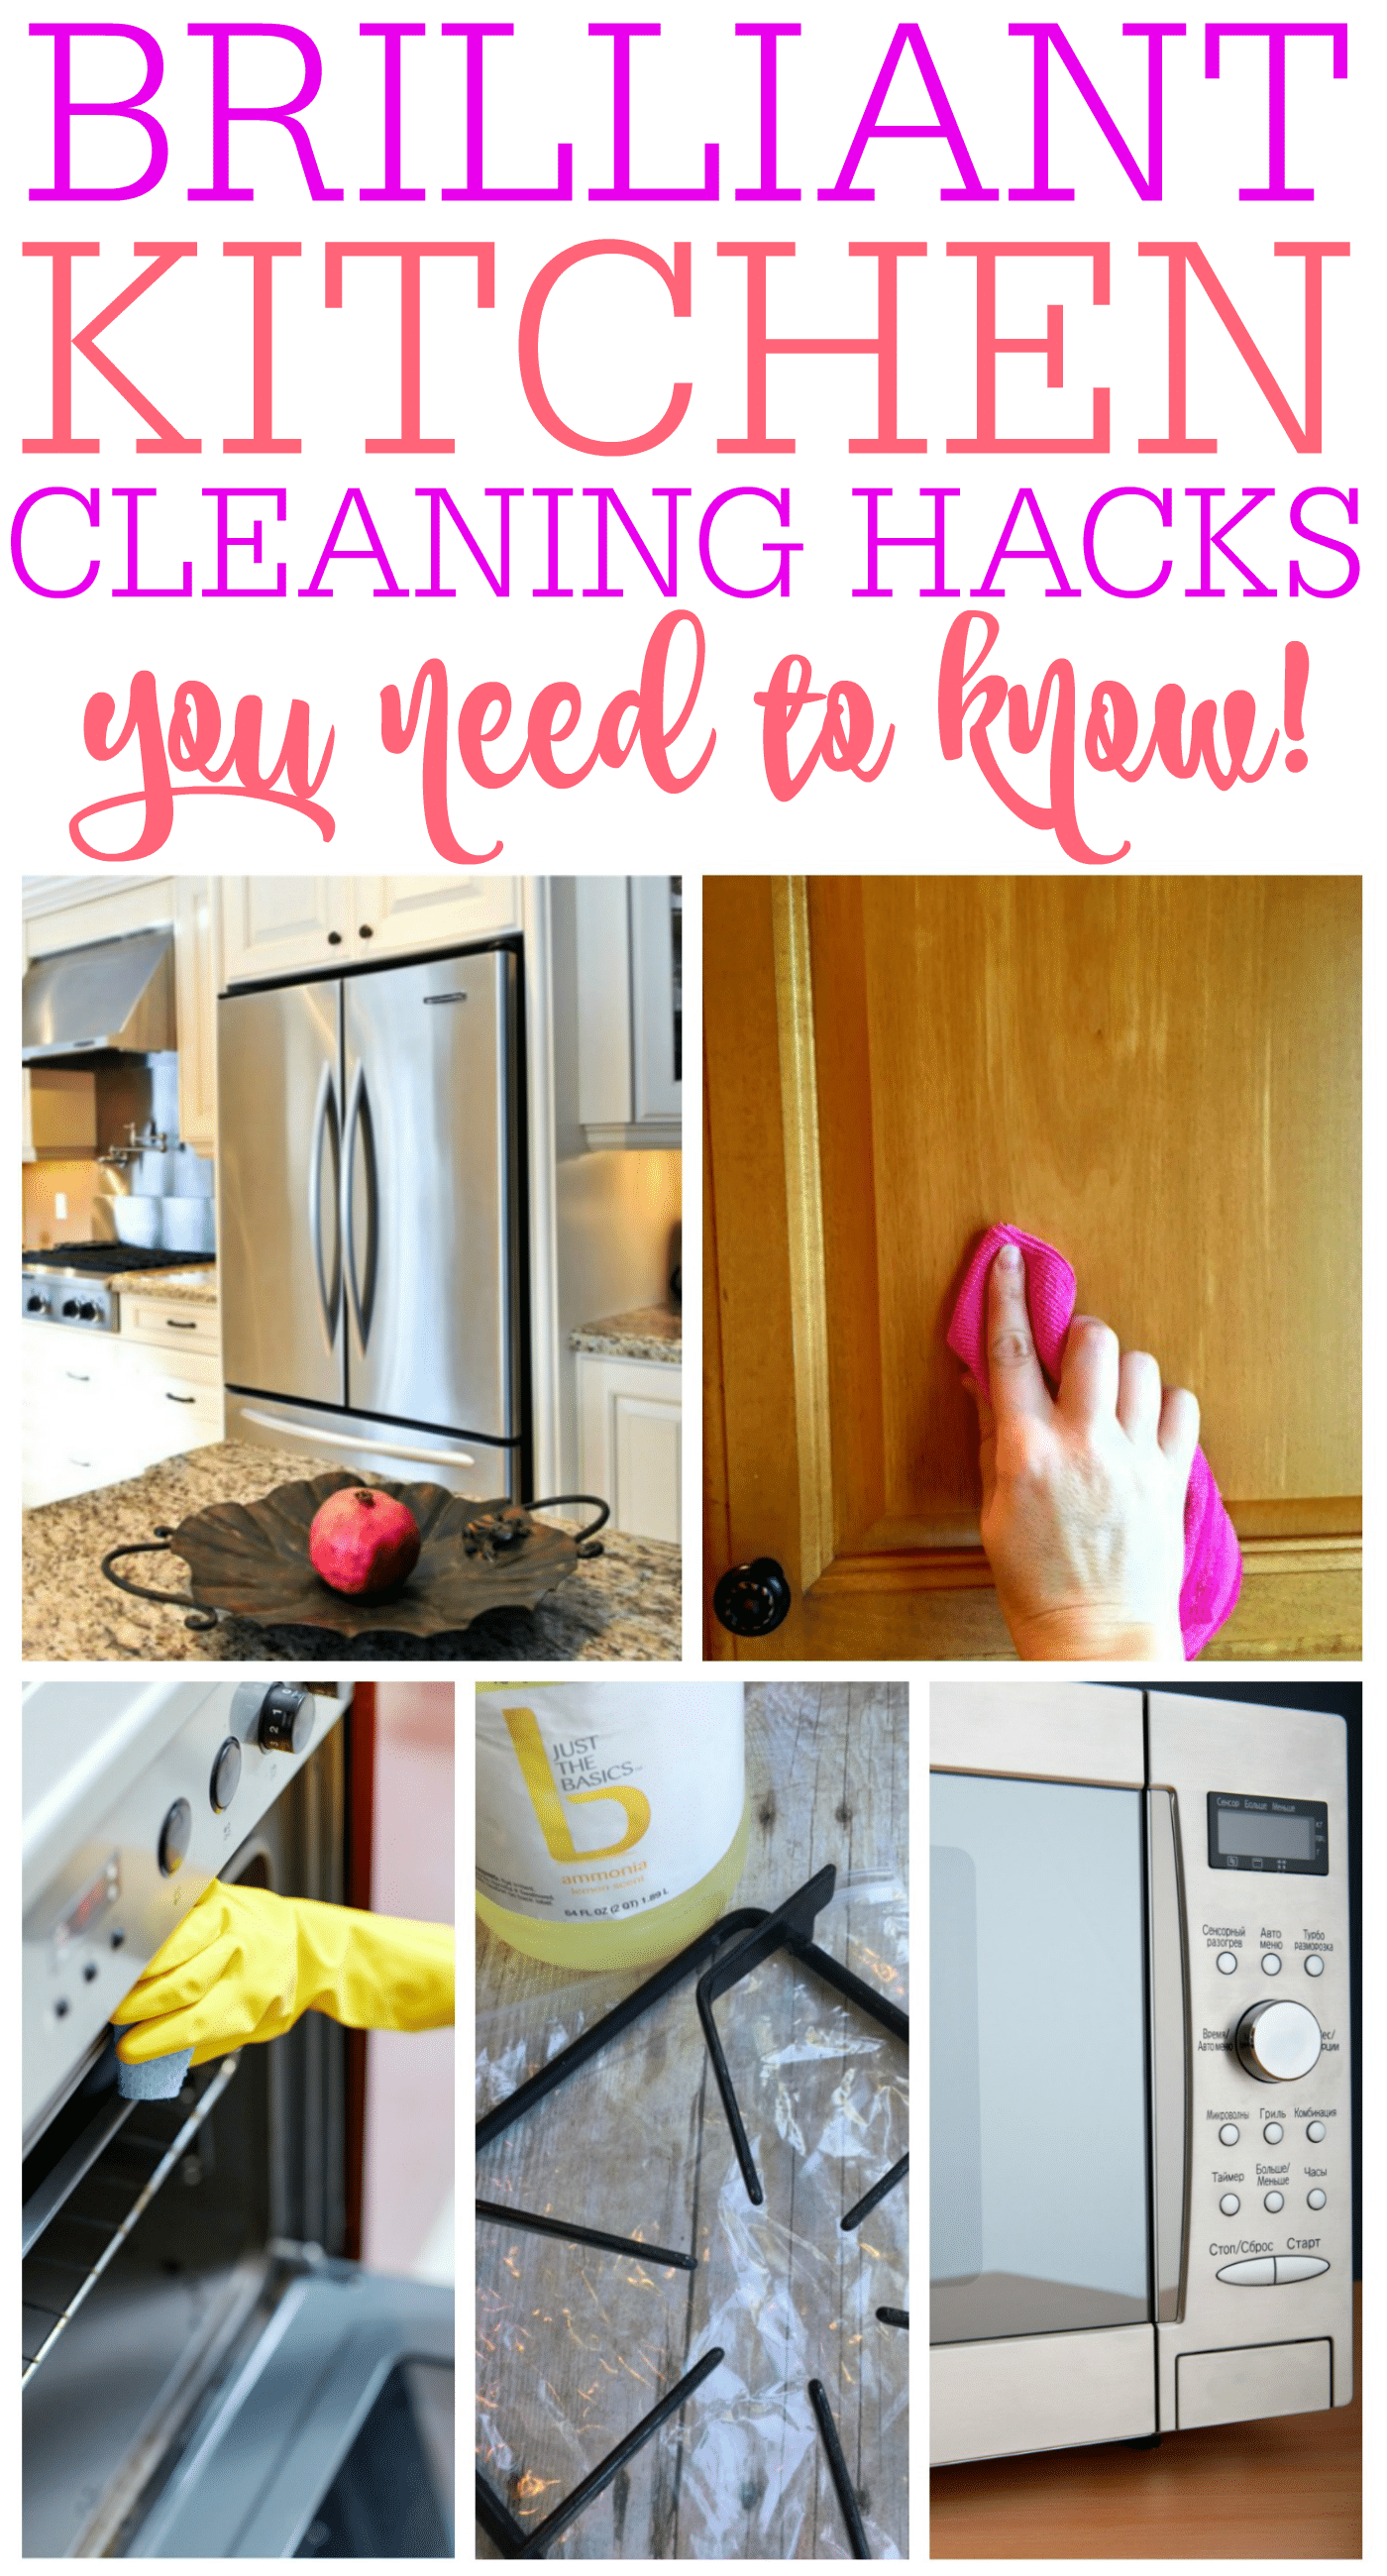 Brilliant Kitchen Cleaning Hacks You Need To Know - Frugally Blonde